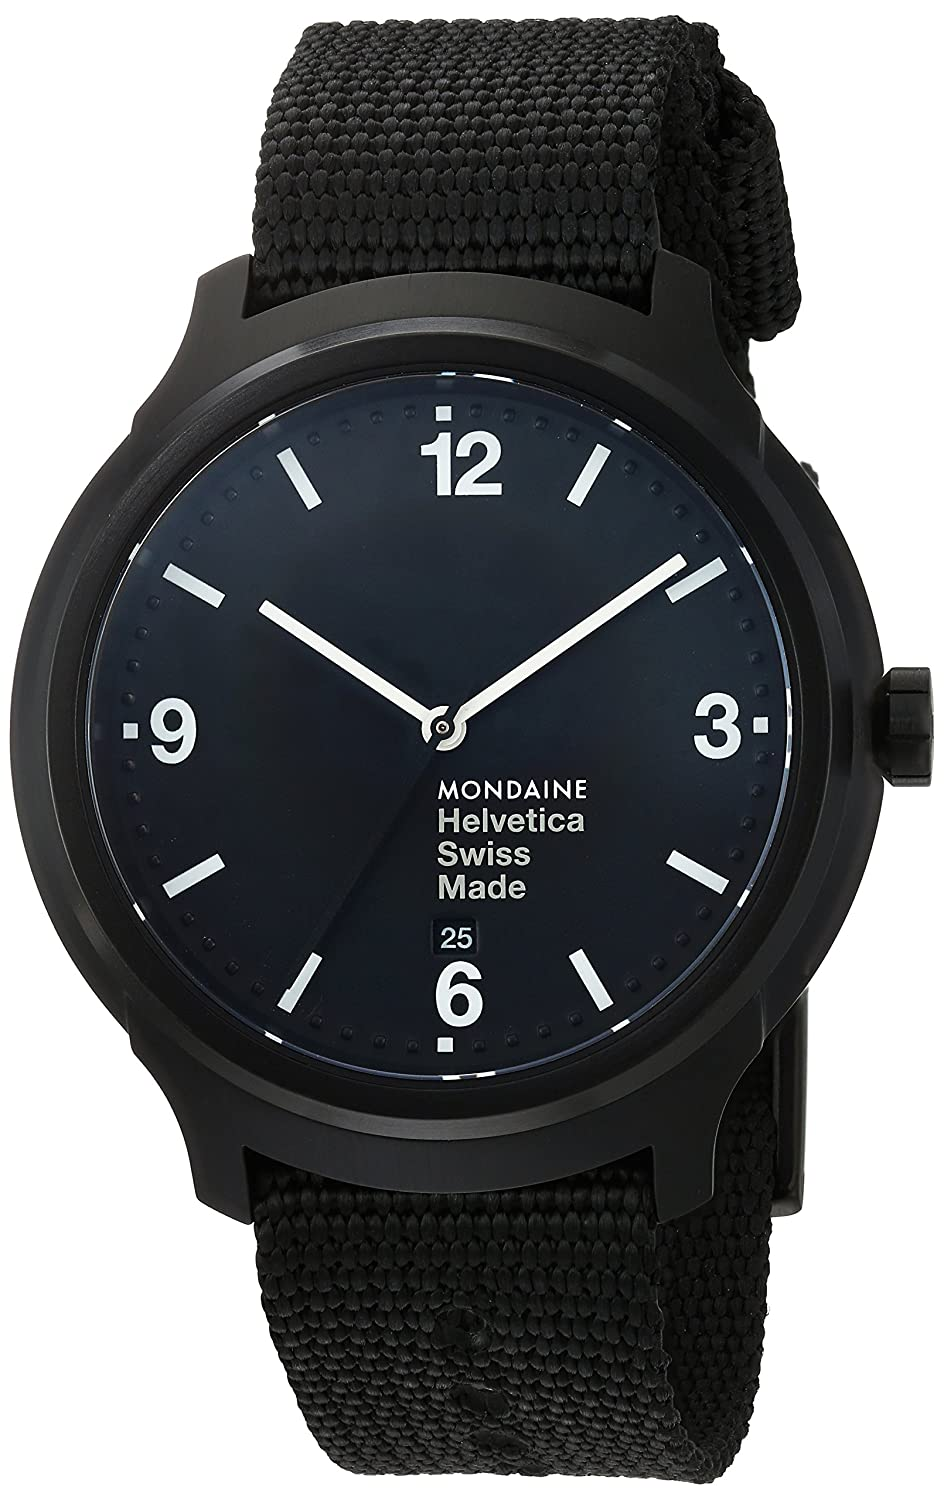 Mondaine Helvetica No1 Wrist Watch MH1.B1221.NB Black Nylon Strap, Black Case and Dial, White Hands and Numbers